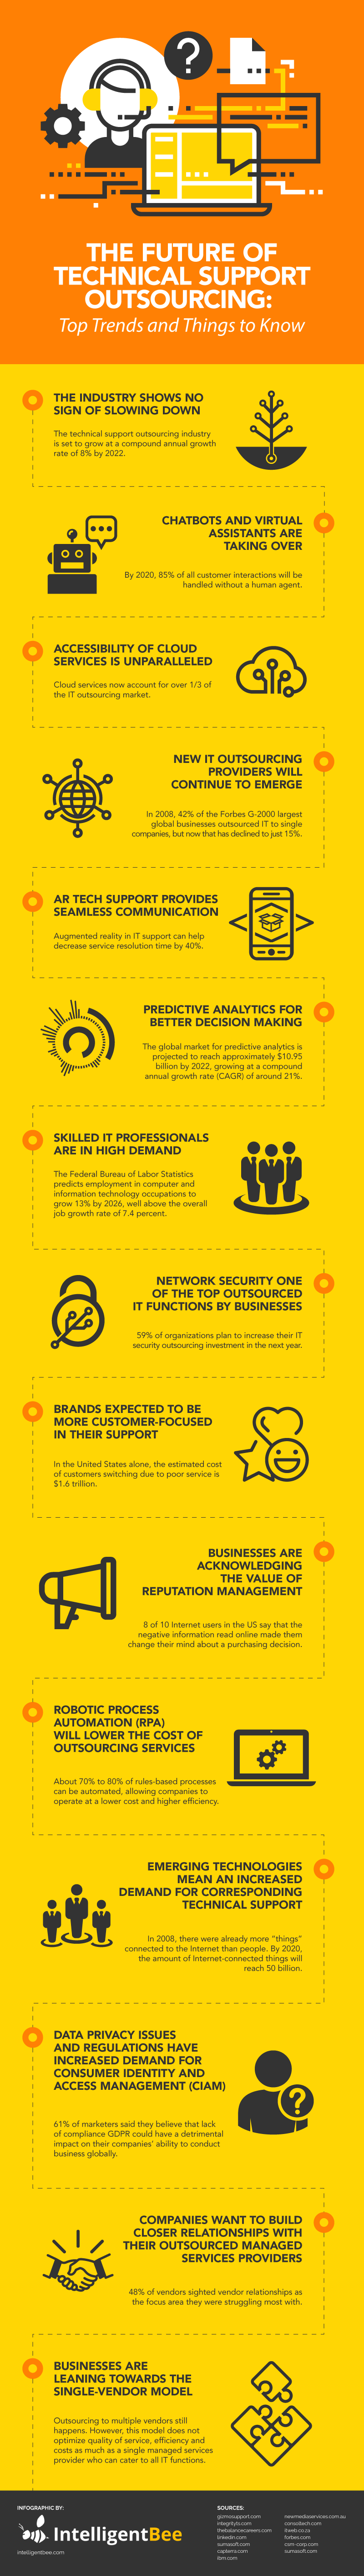 Technical Support Outsourcing: What the Future has in Store [Infographic]